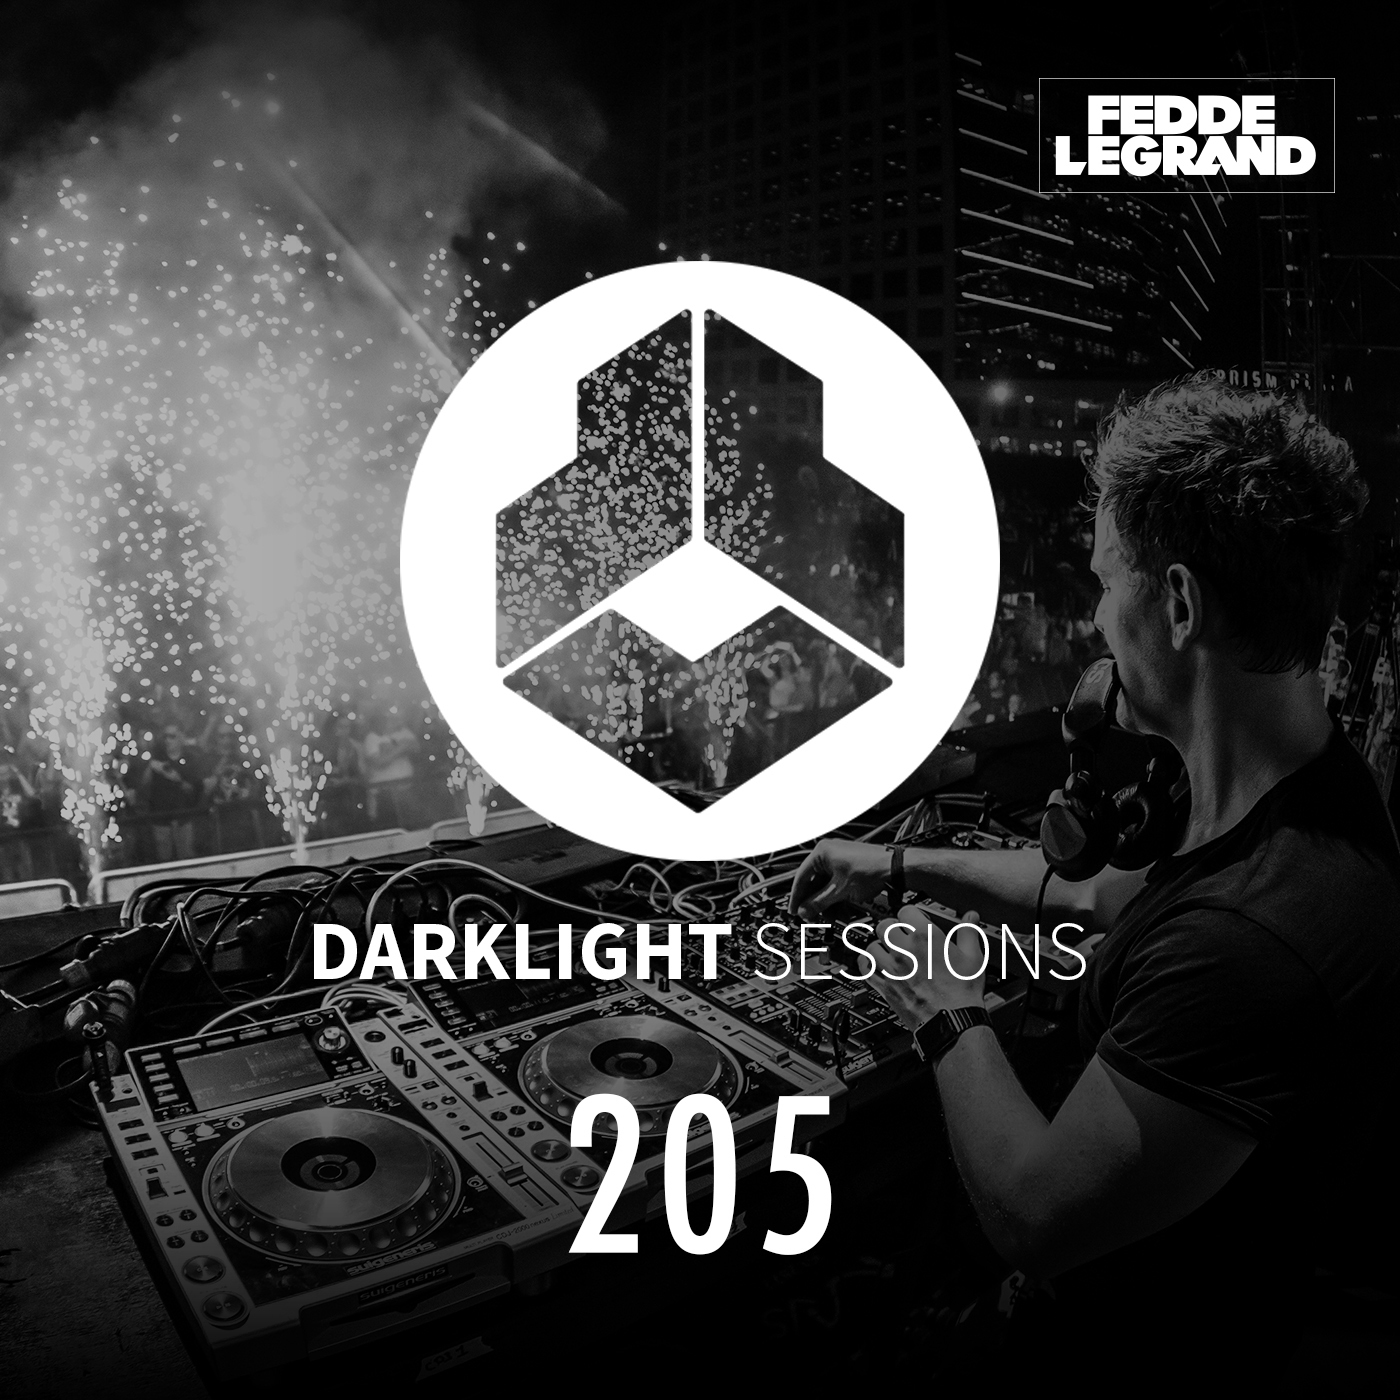 Darklight Sessions 205